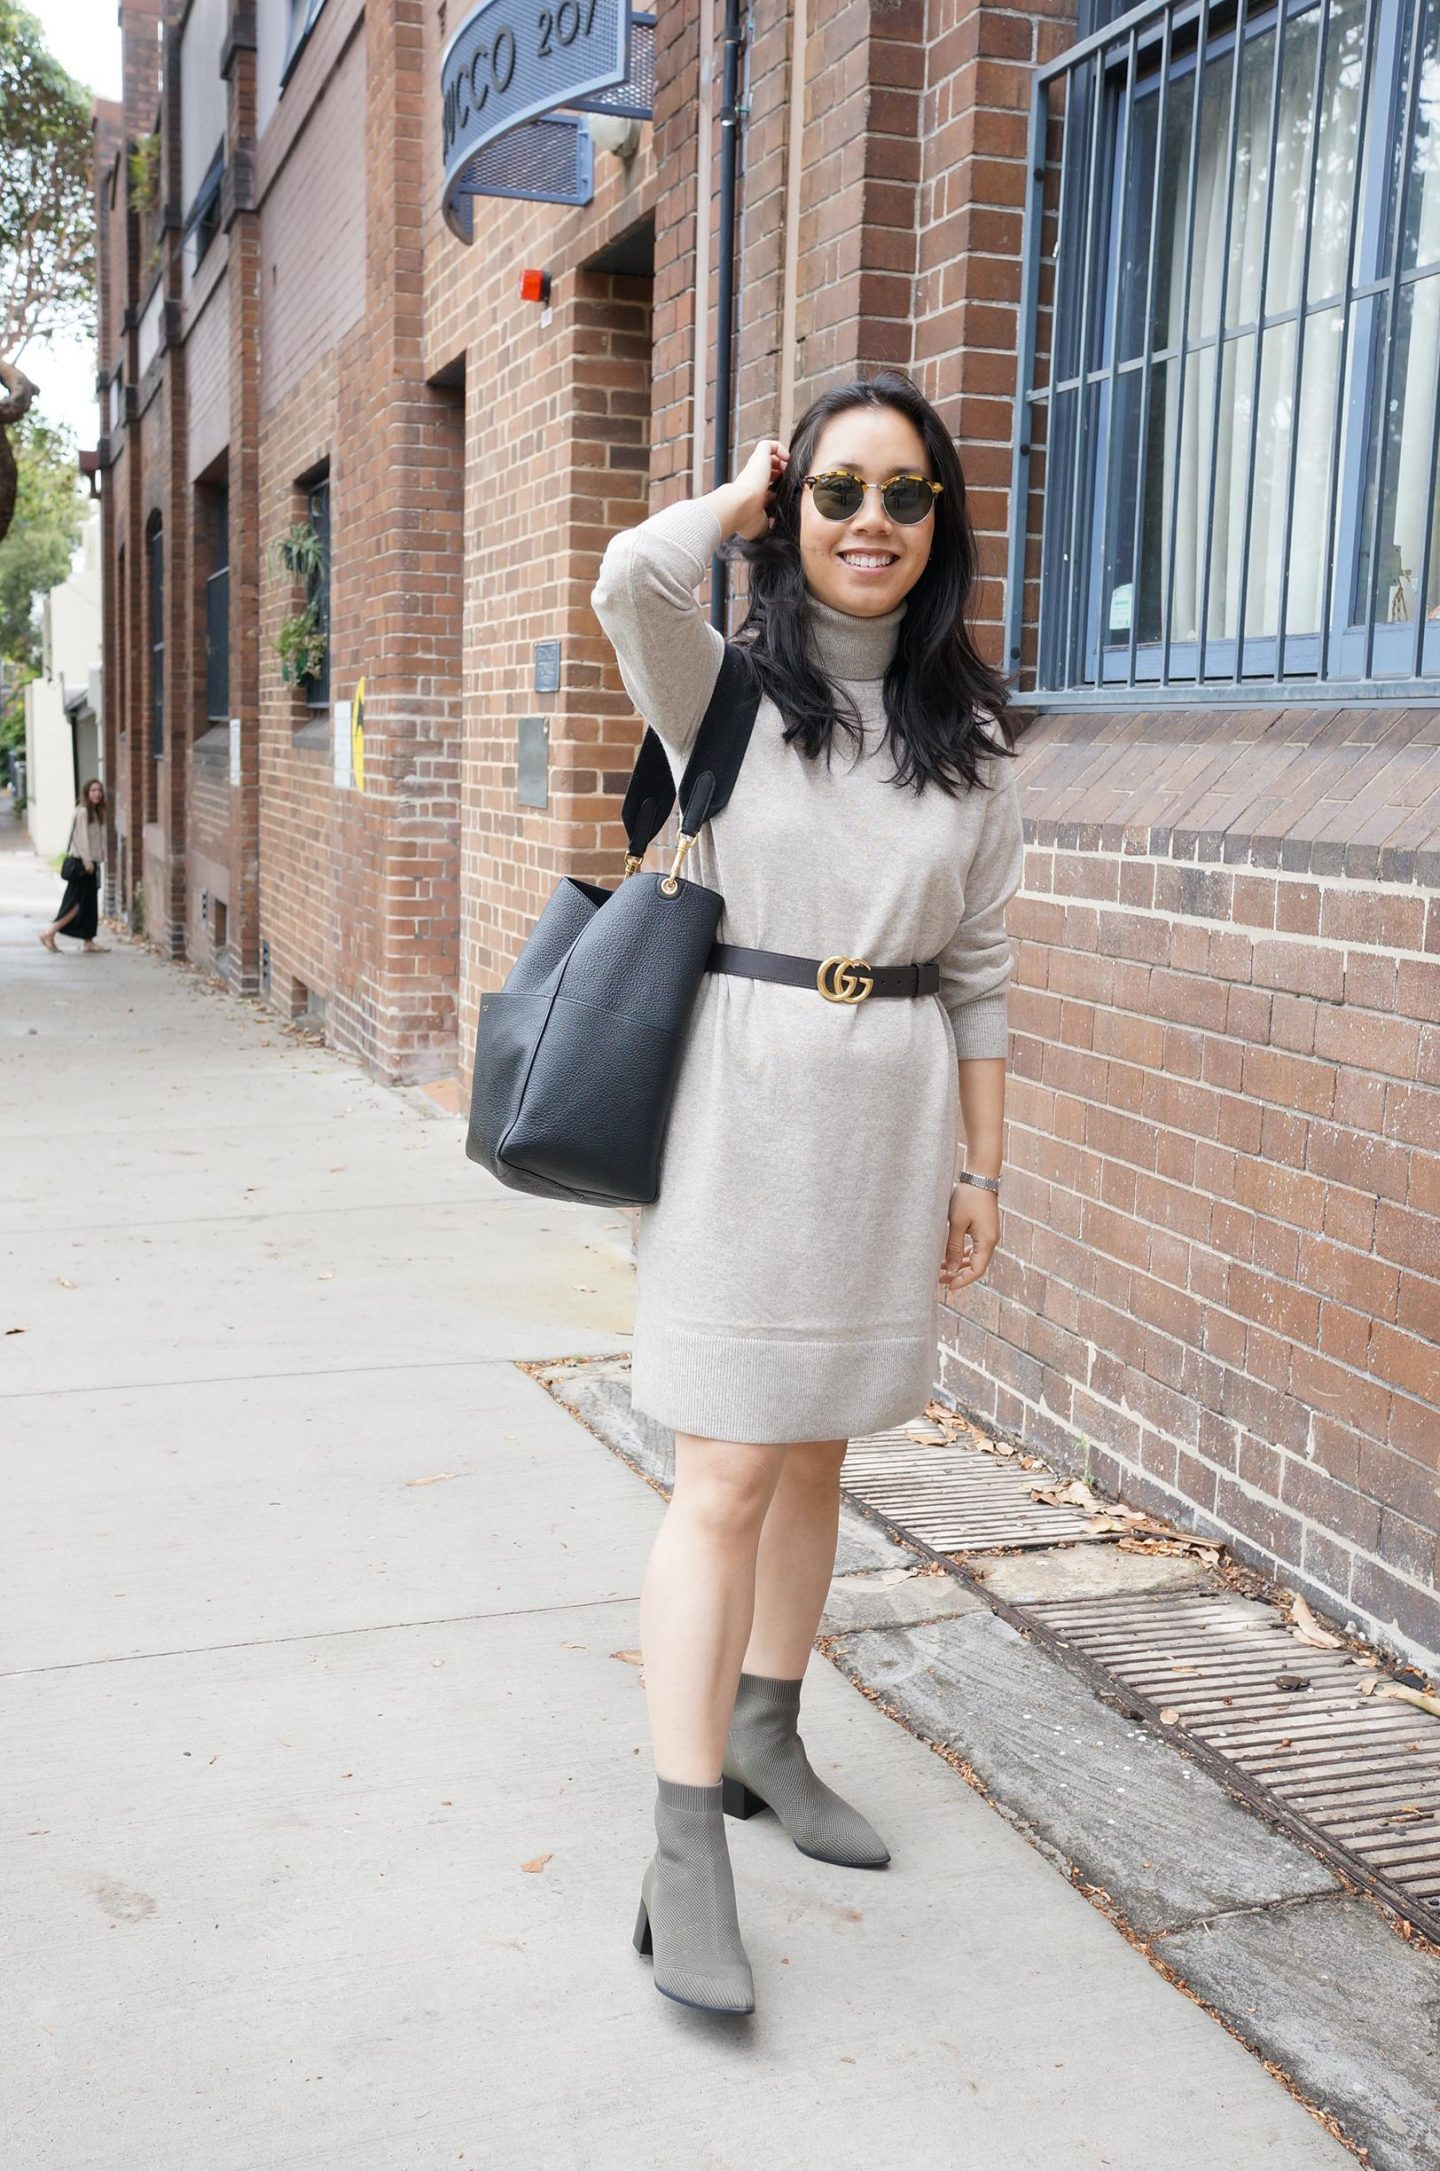 everlane cashmere turtleneck dress in oatmeal in blog post about over 30s style tips